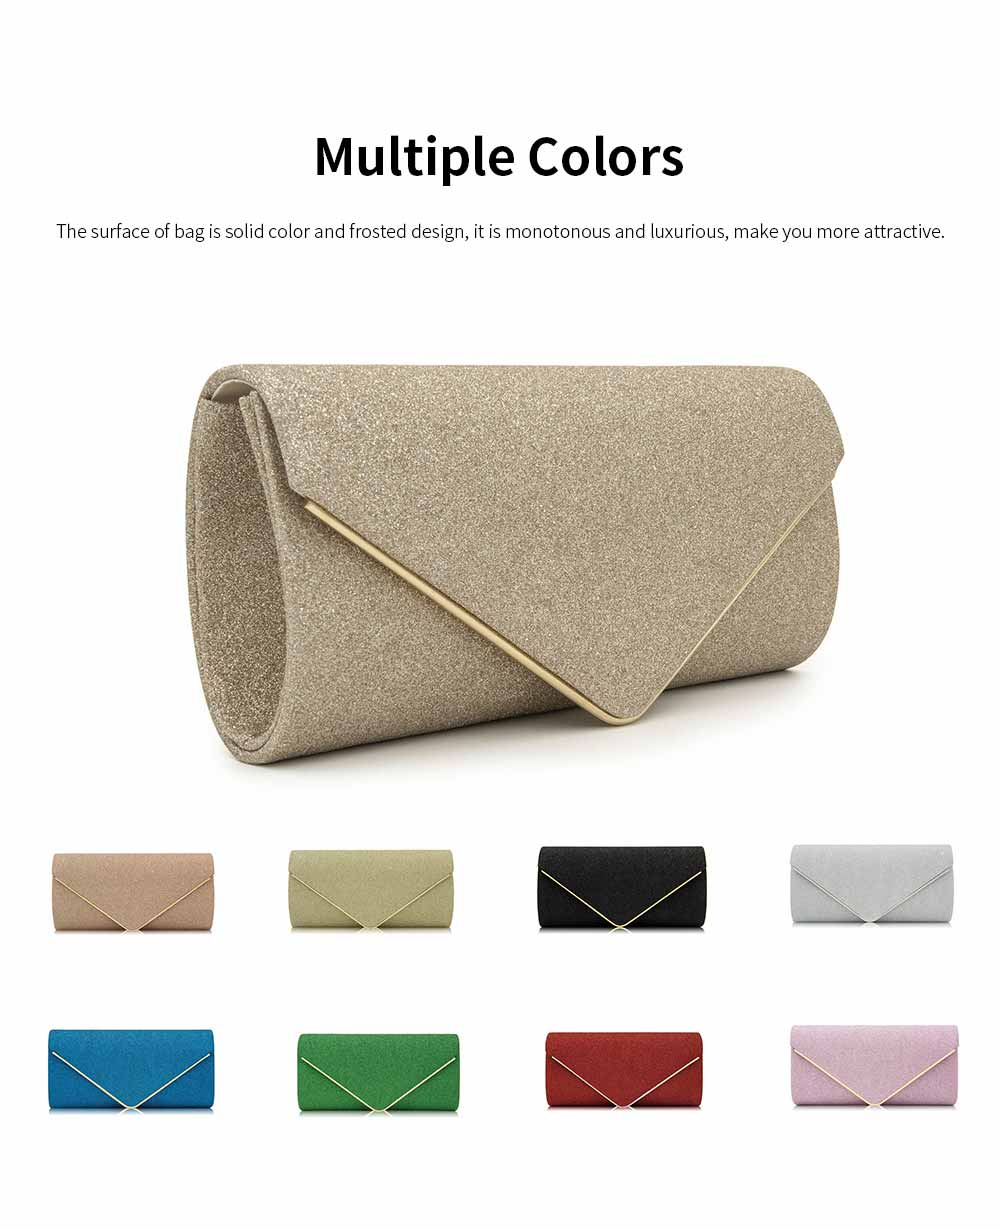 Evening Bag Lining Clothe Material Elegant Clutch for Dinner Women Shiny Envelope-bag Good-looking Handbag 3